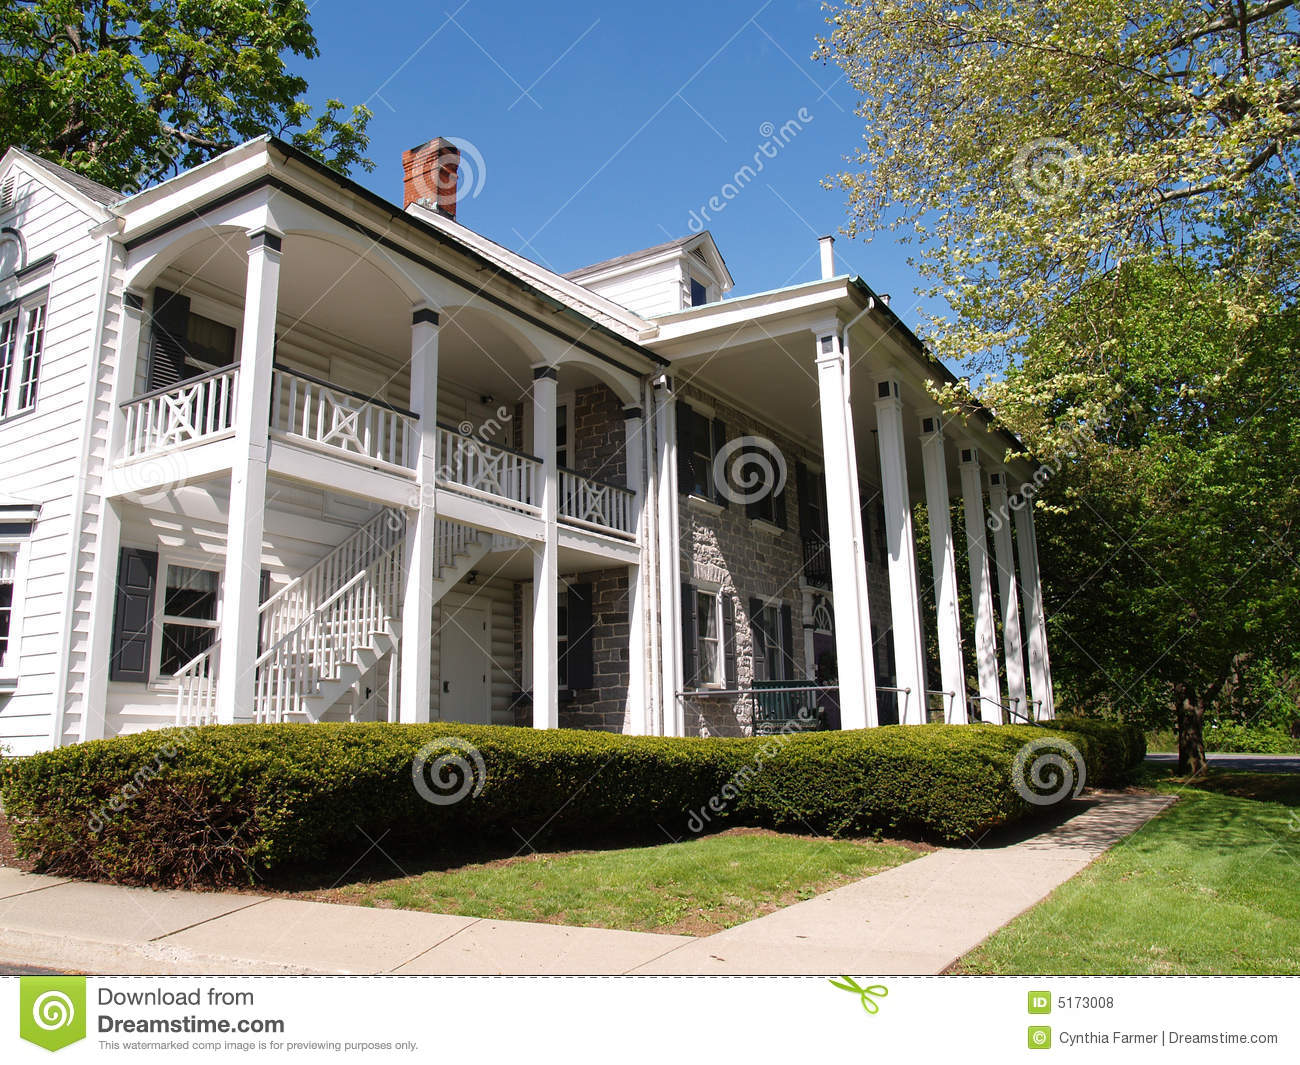 Covered front porch craftsman style home royalty free stock image - Royalty Free Stock Photo Balcony Columns Exterior Front Home Large Porch